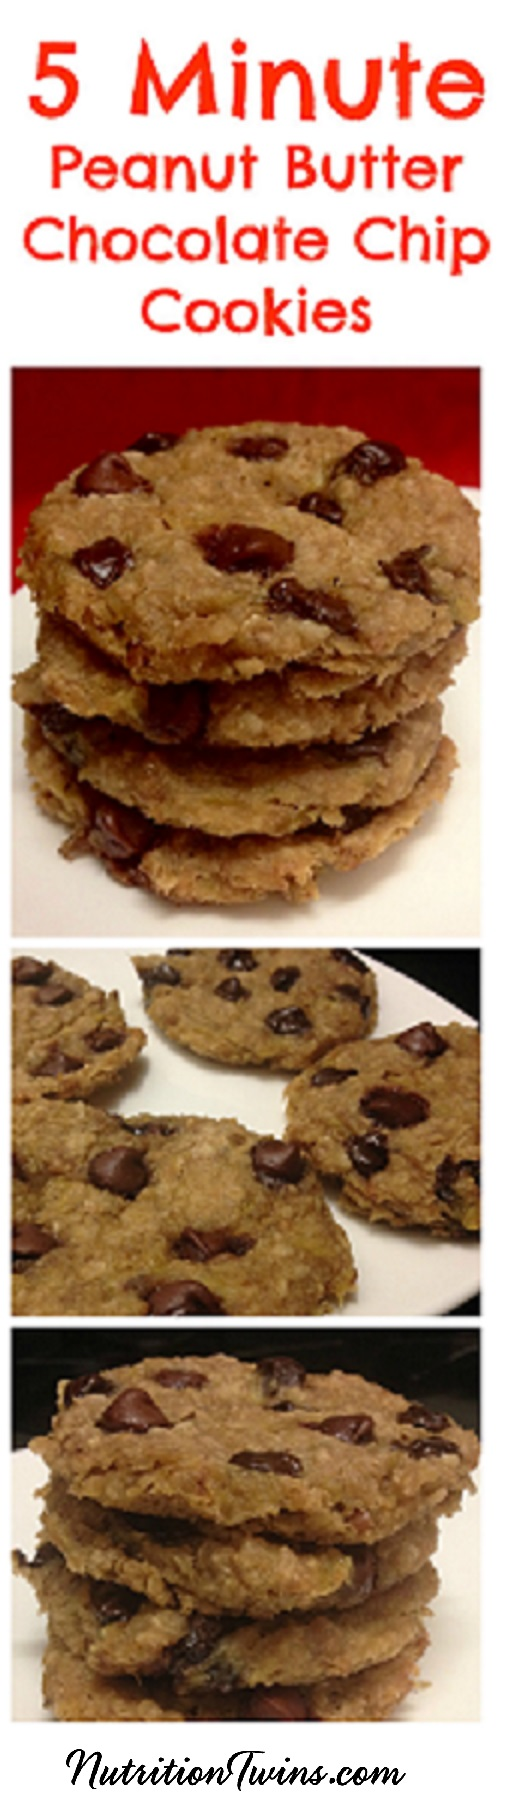 5_min_PB_chocolate_chip_cookie_collage1